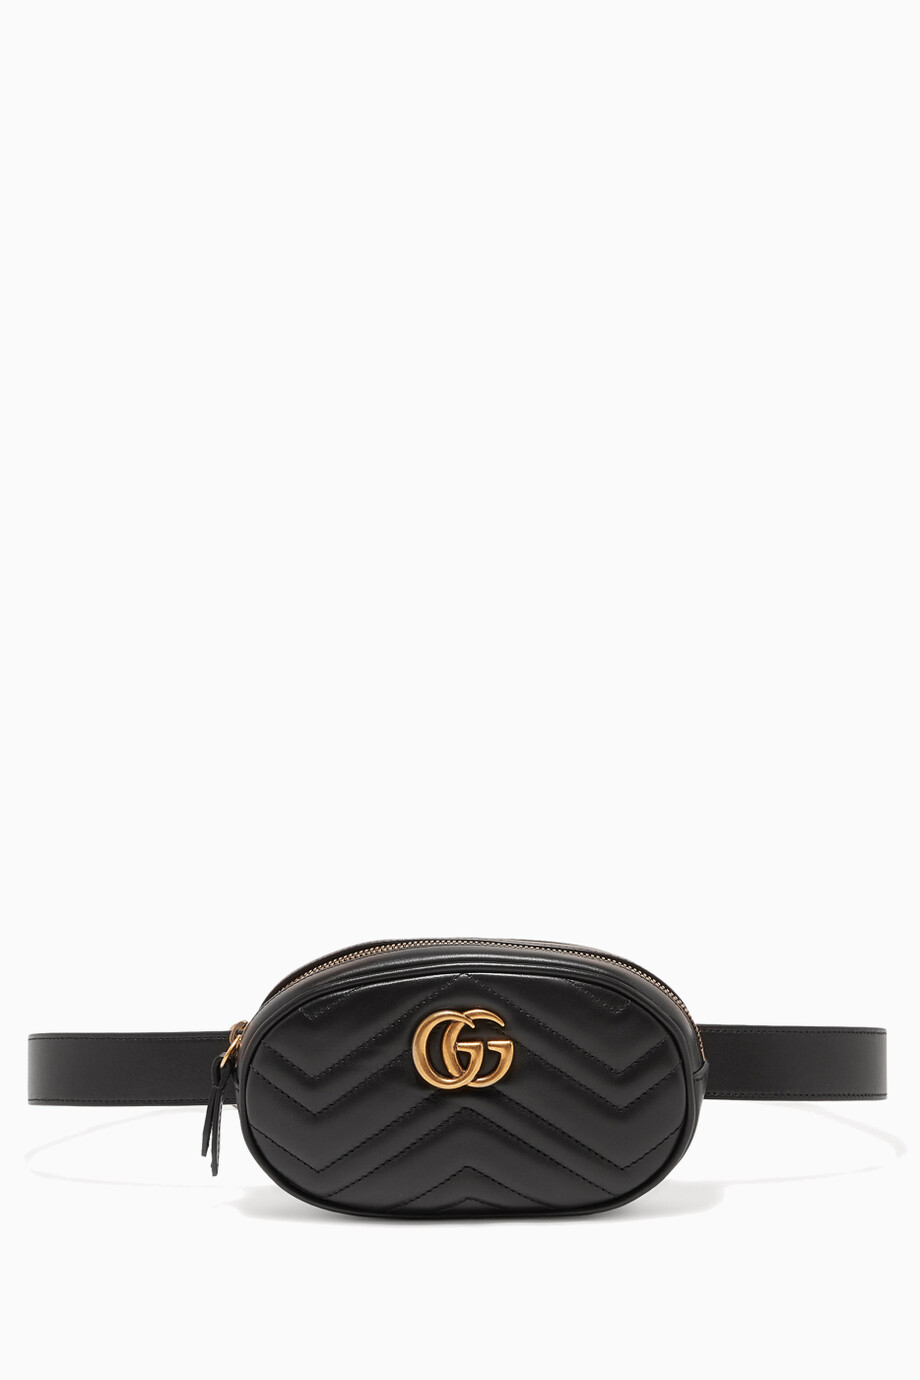 0d22cceea65c Shop Gucci Black Black Marmont Matelassé Leather Belt Bag for Women ...